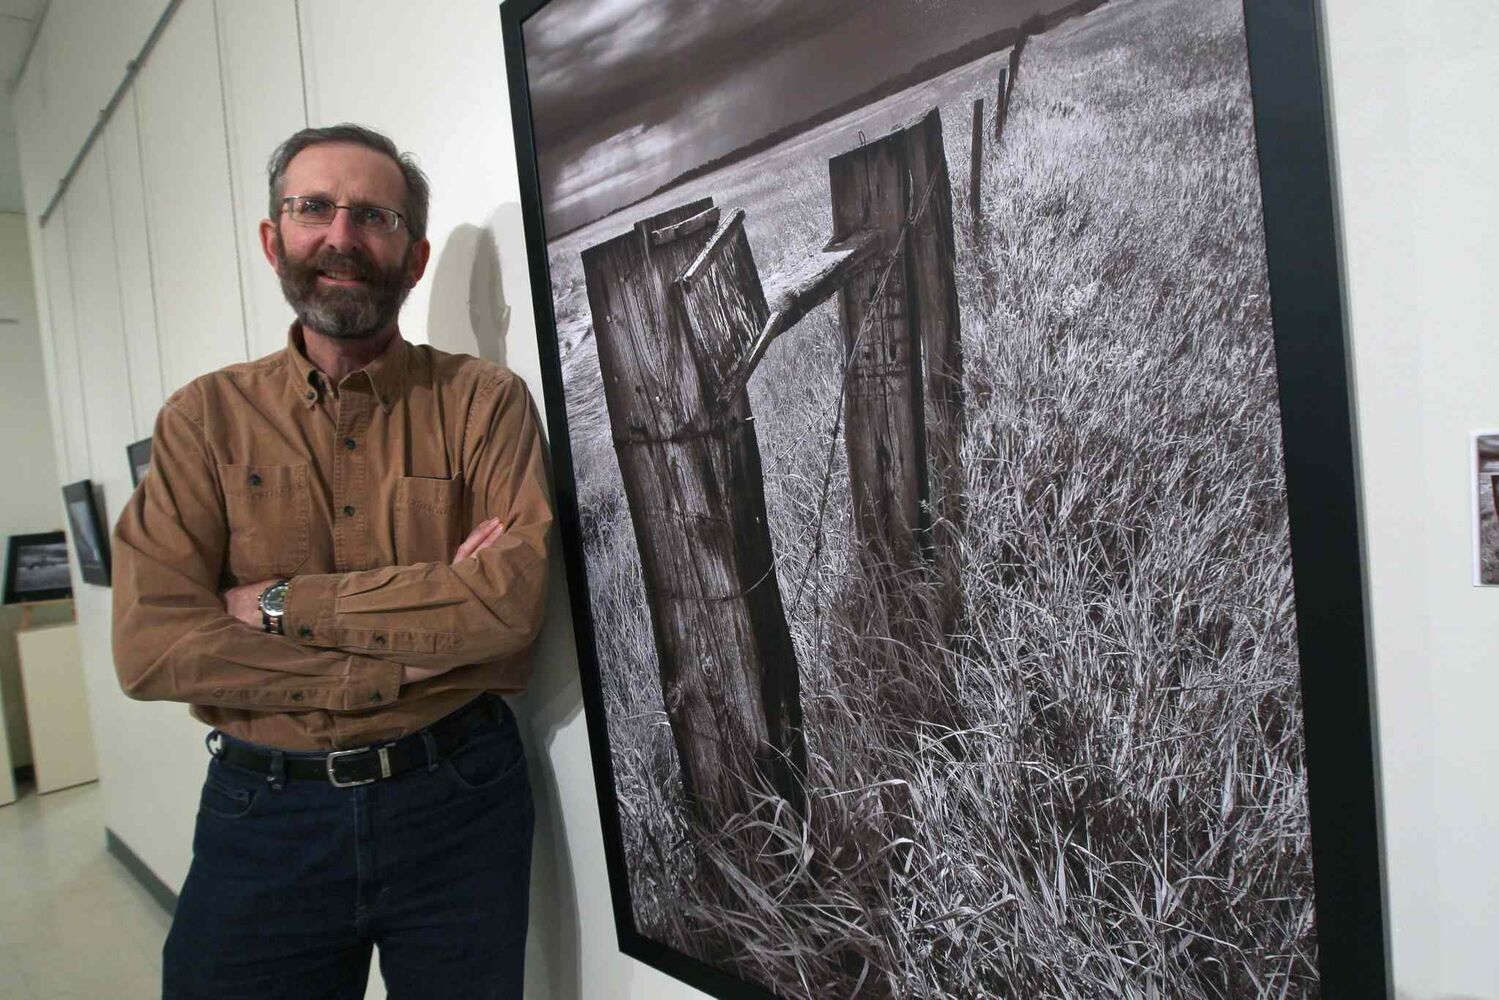 Manitoba farmer-turned-photographer Stan Wiebe, 54, has a wonderfully disquieting exhibit of 46 photos, Almost Black and White, on display at Portage La Prairie's Portage and District Arts Centre until Feb. 14.